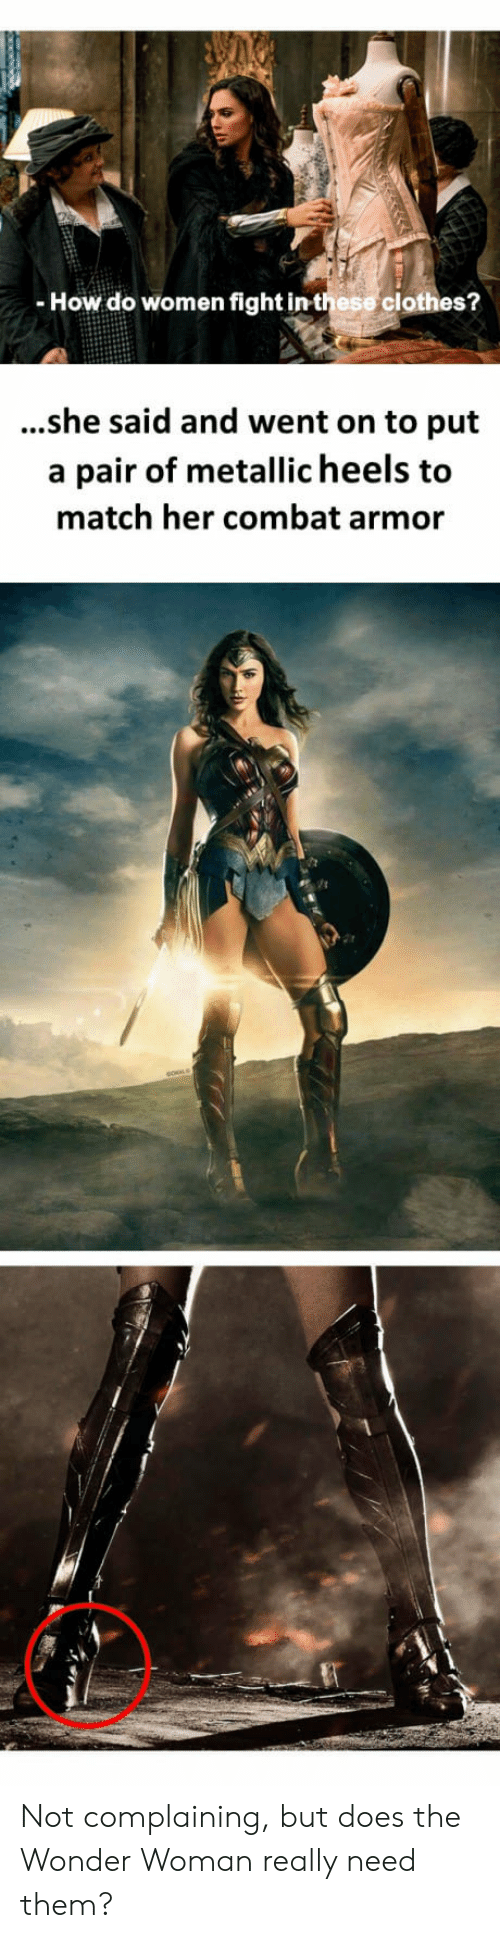 Clothes, Match, and Women: - How do women fight in these clothes?  ...she said and went on to put  a pair of metallic heels to  match her combat armor Not complaining, but does the Wonder Woman really need them?